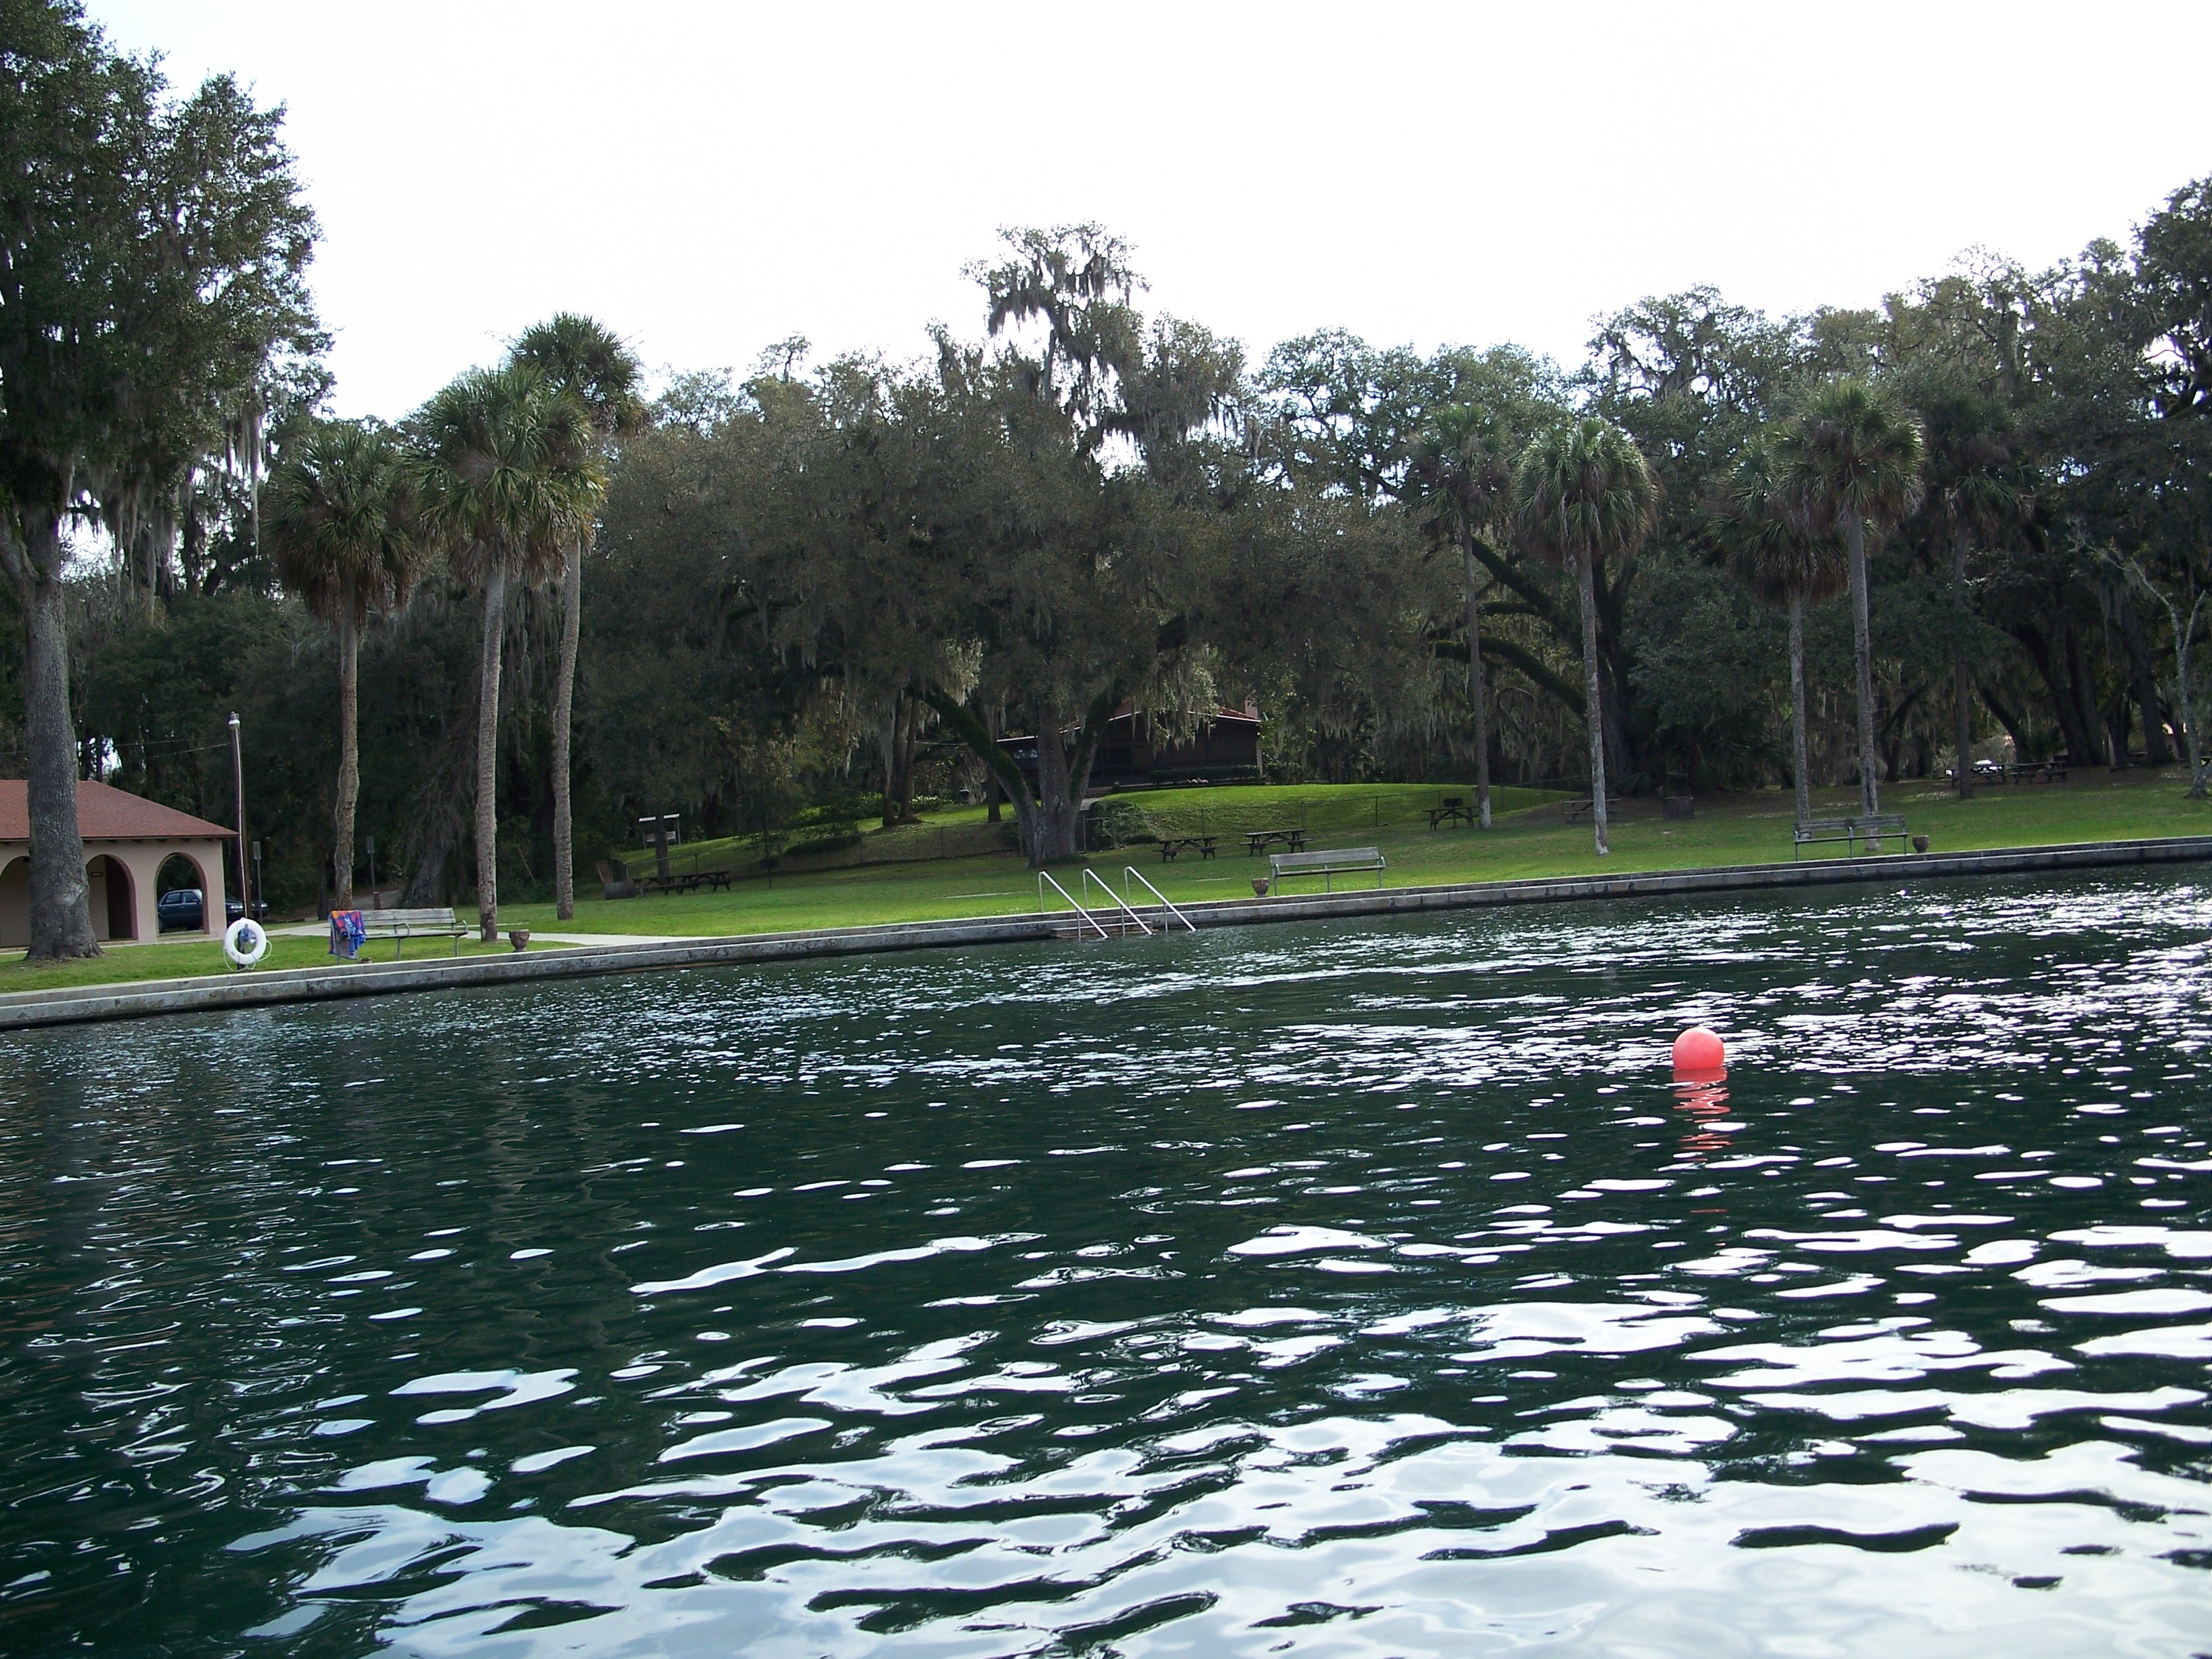 de leon springs singles Reserve a table for the best dining in de leon springs, florida on tripadvisor: see 590 reviews of 8 de leon springs restaurants and search by cuisine, price.